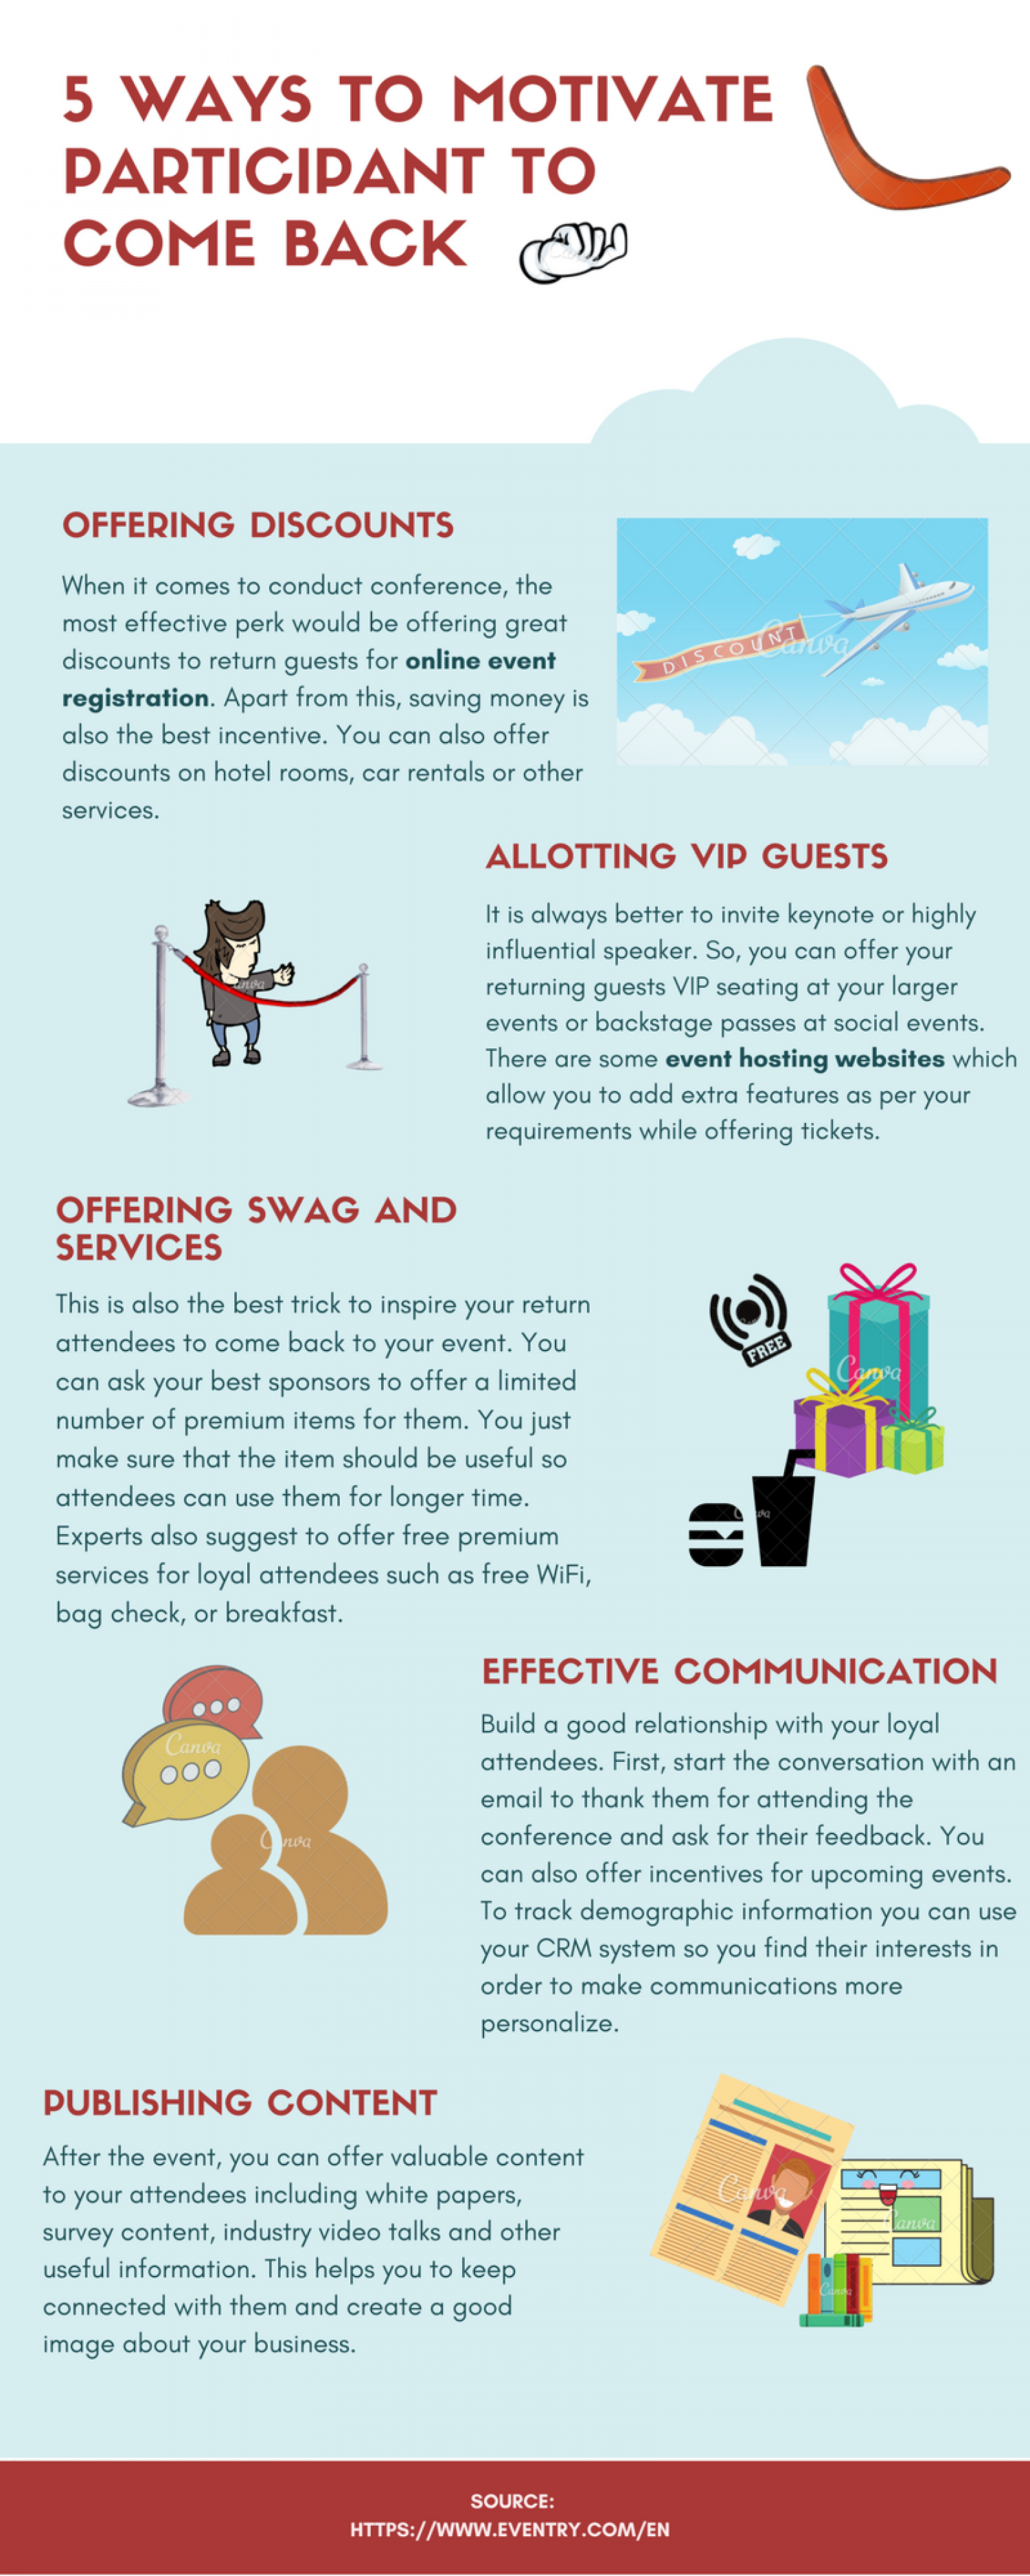 5 Ways To Motivate Participants To Come Back. Infographic